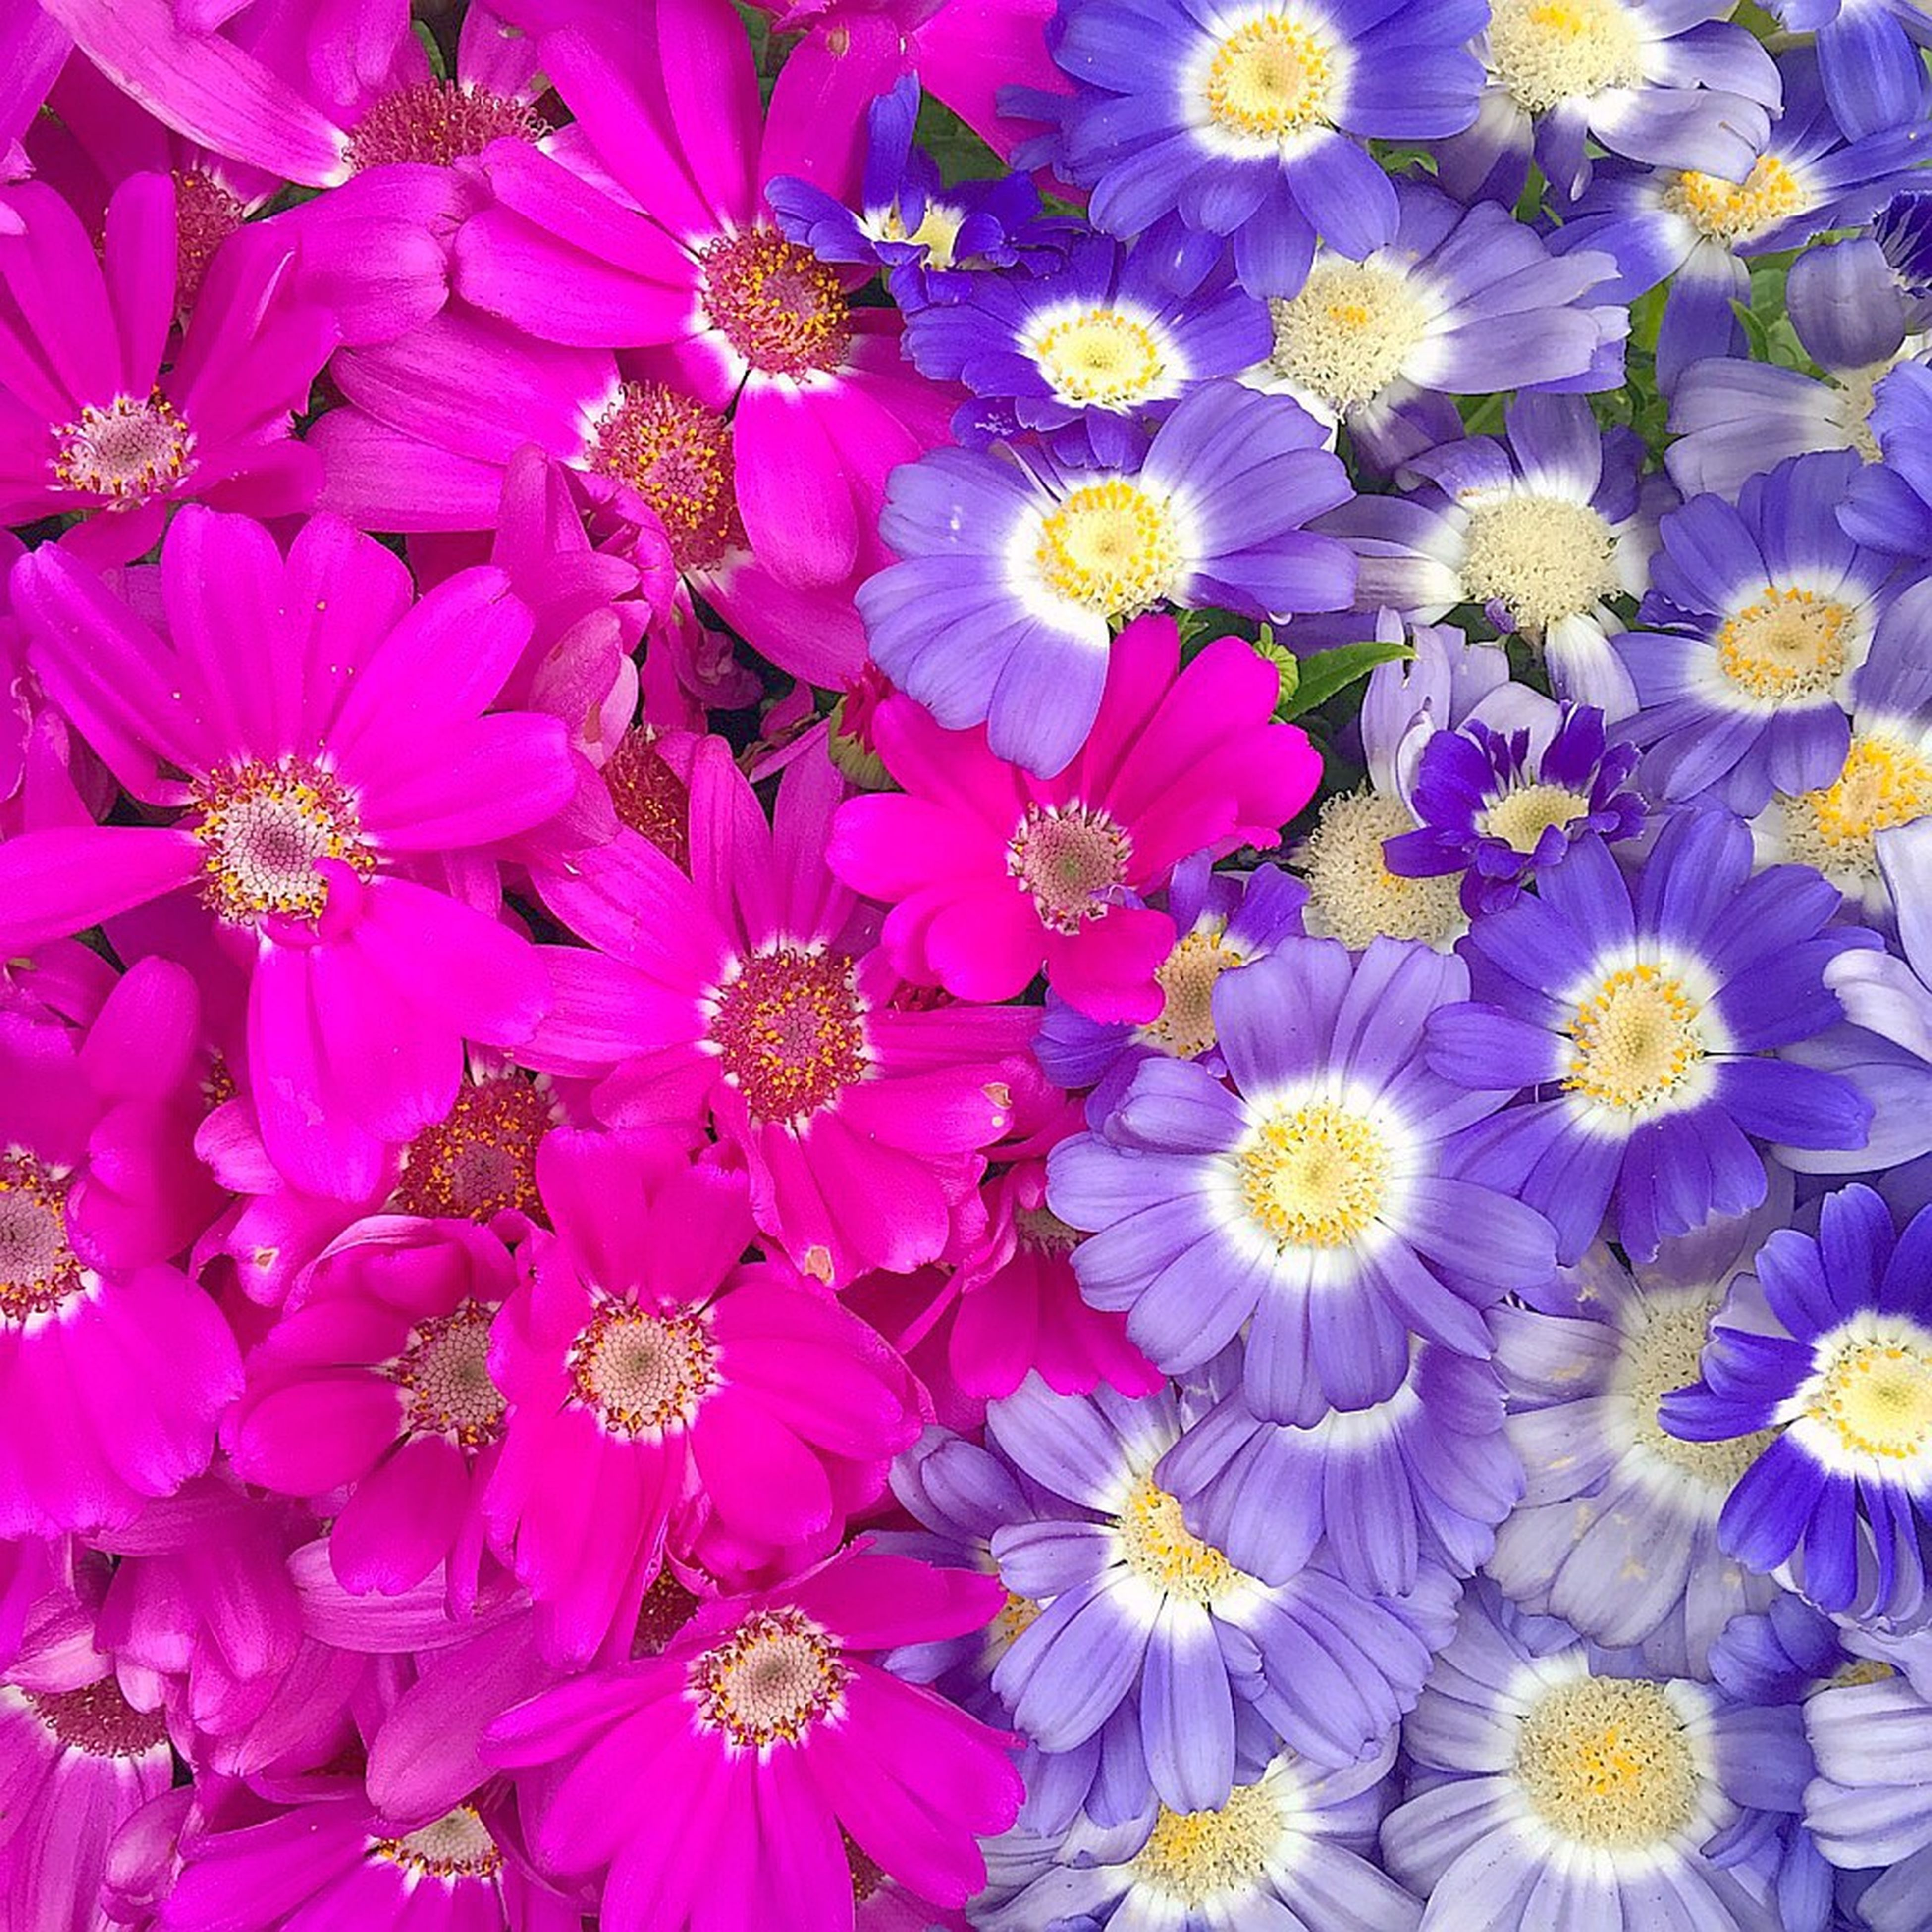 flower, freshness, petal, fragility, full frame, flower head, beauty in nature, backgrounds, growth, blooming, nature, high angle view, abundance, pink color, purple, plant, close-up, in bloom, yellow, pollen